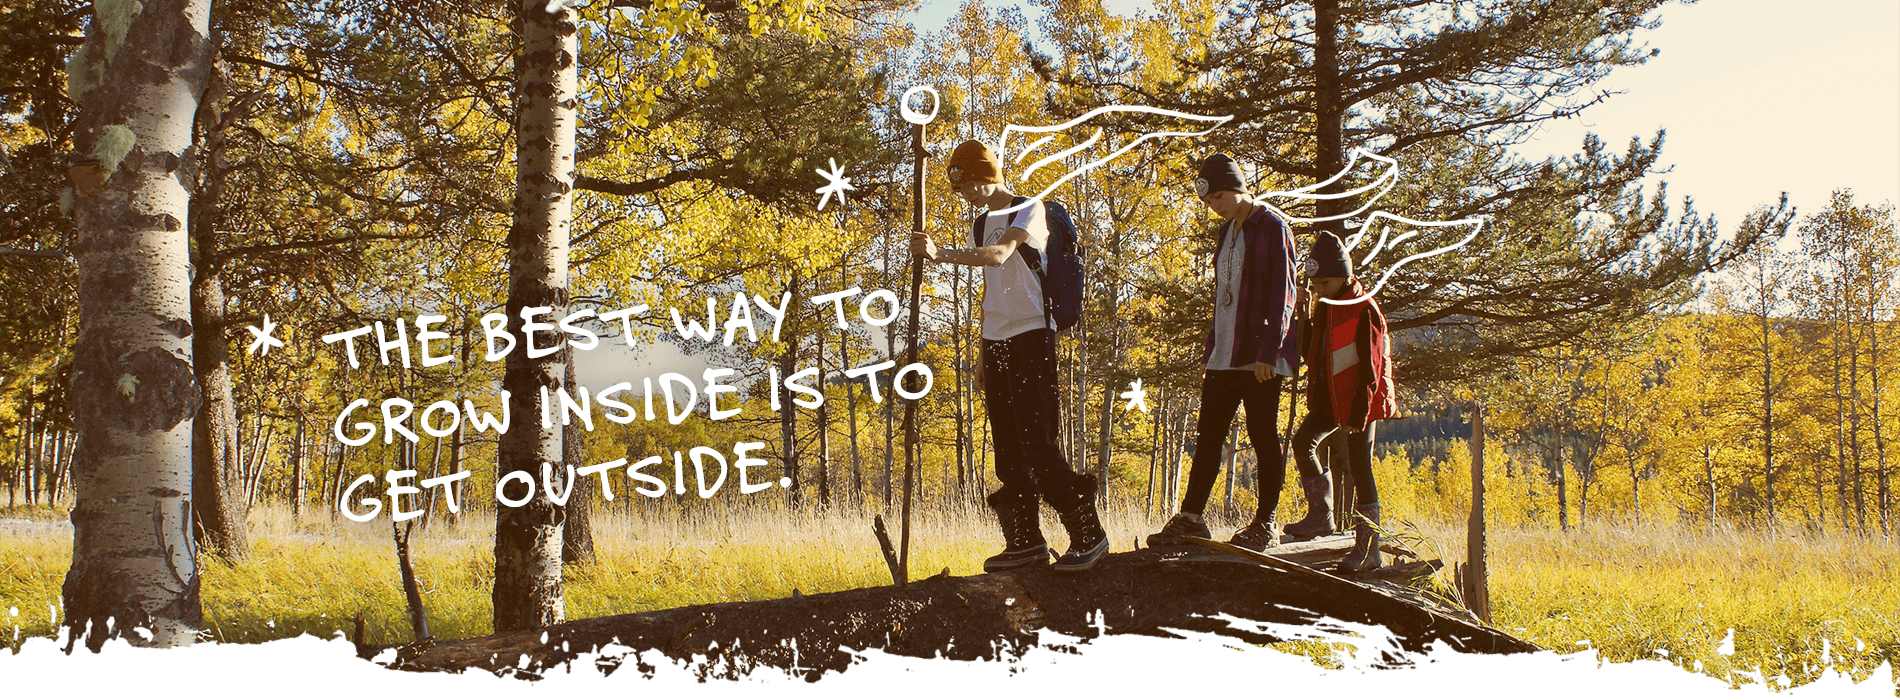 The best way to grow inside is to get outside.